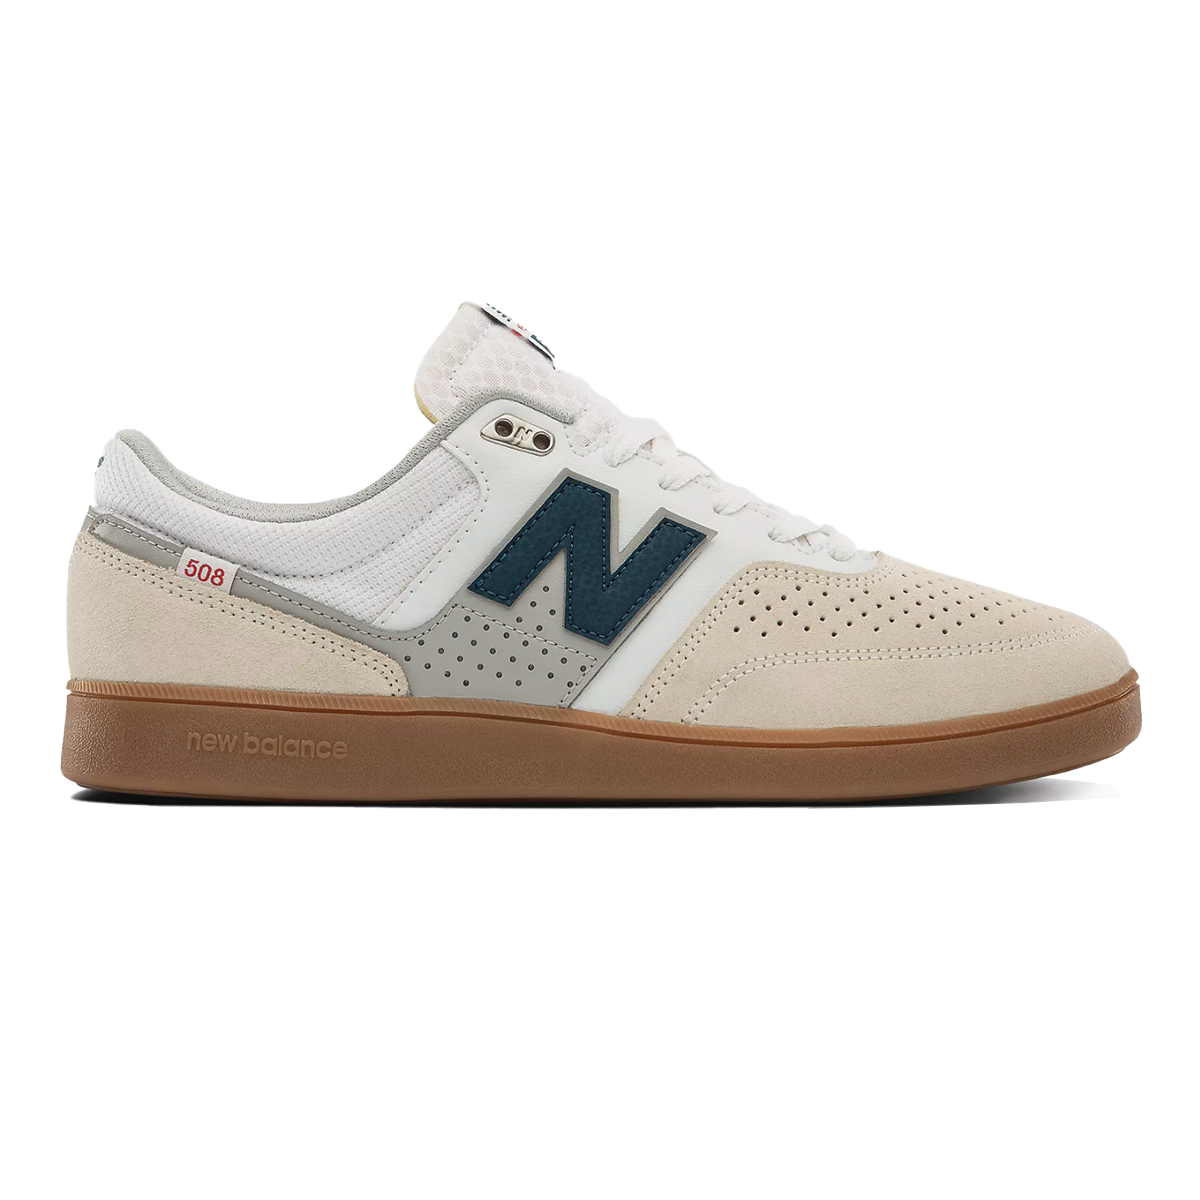 New Balance Numeric 508 - Cream / Gum